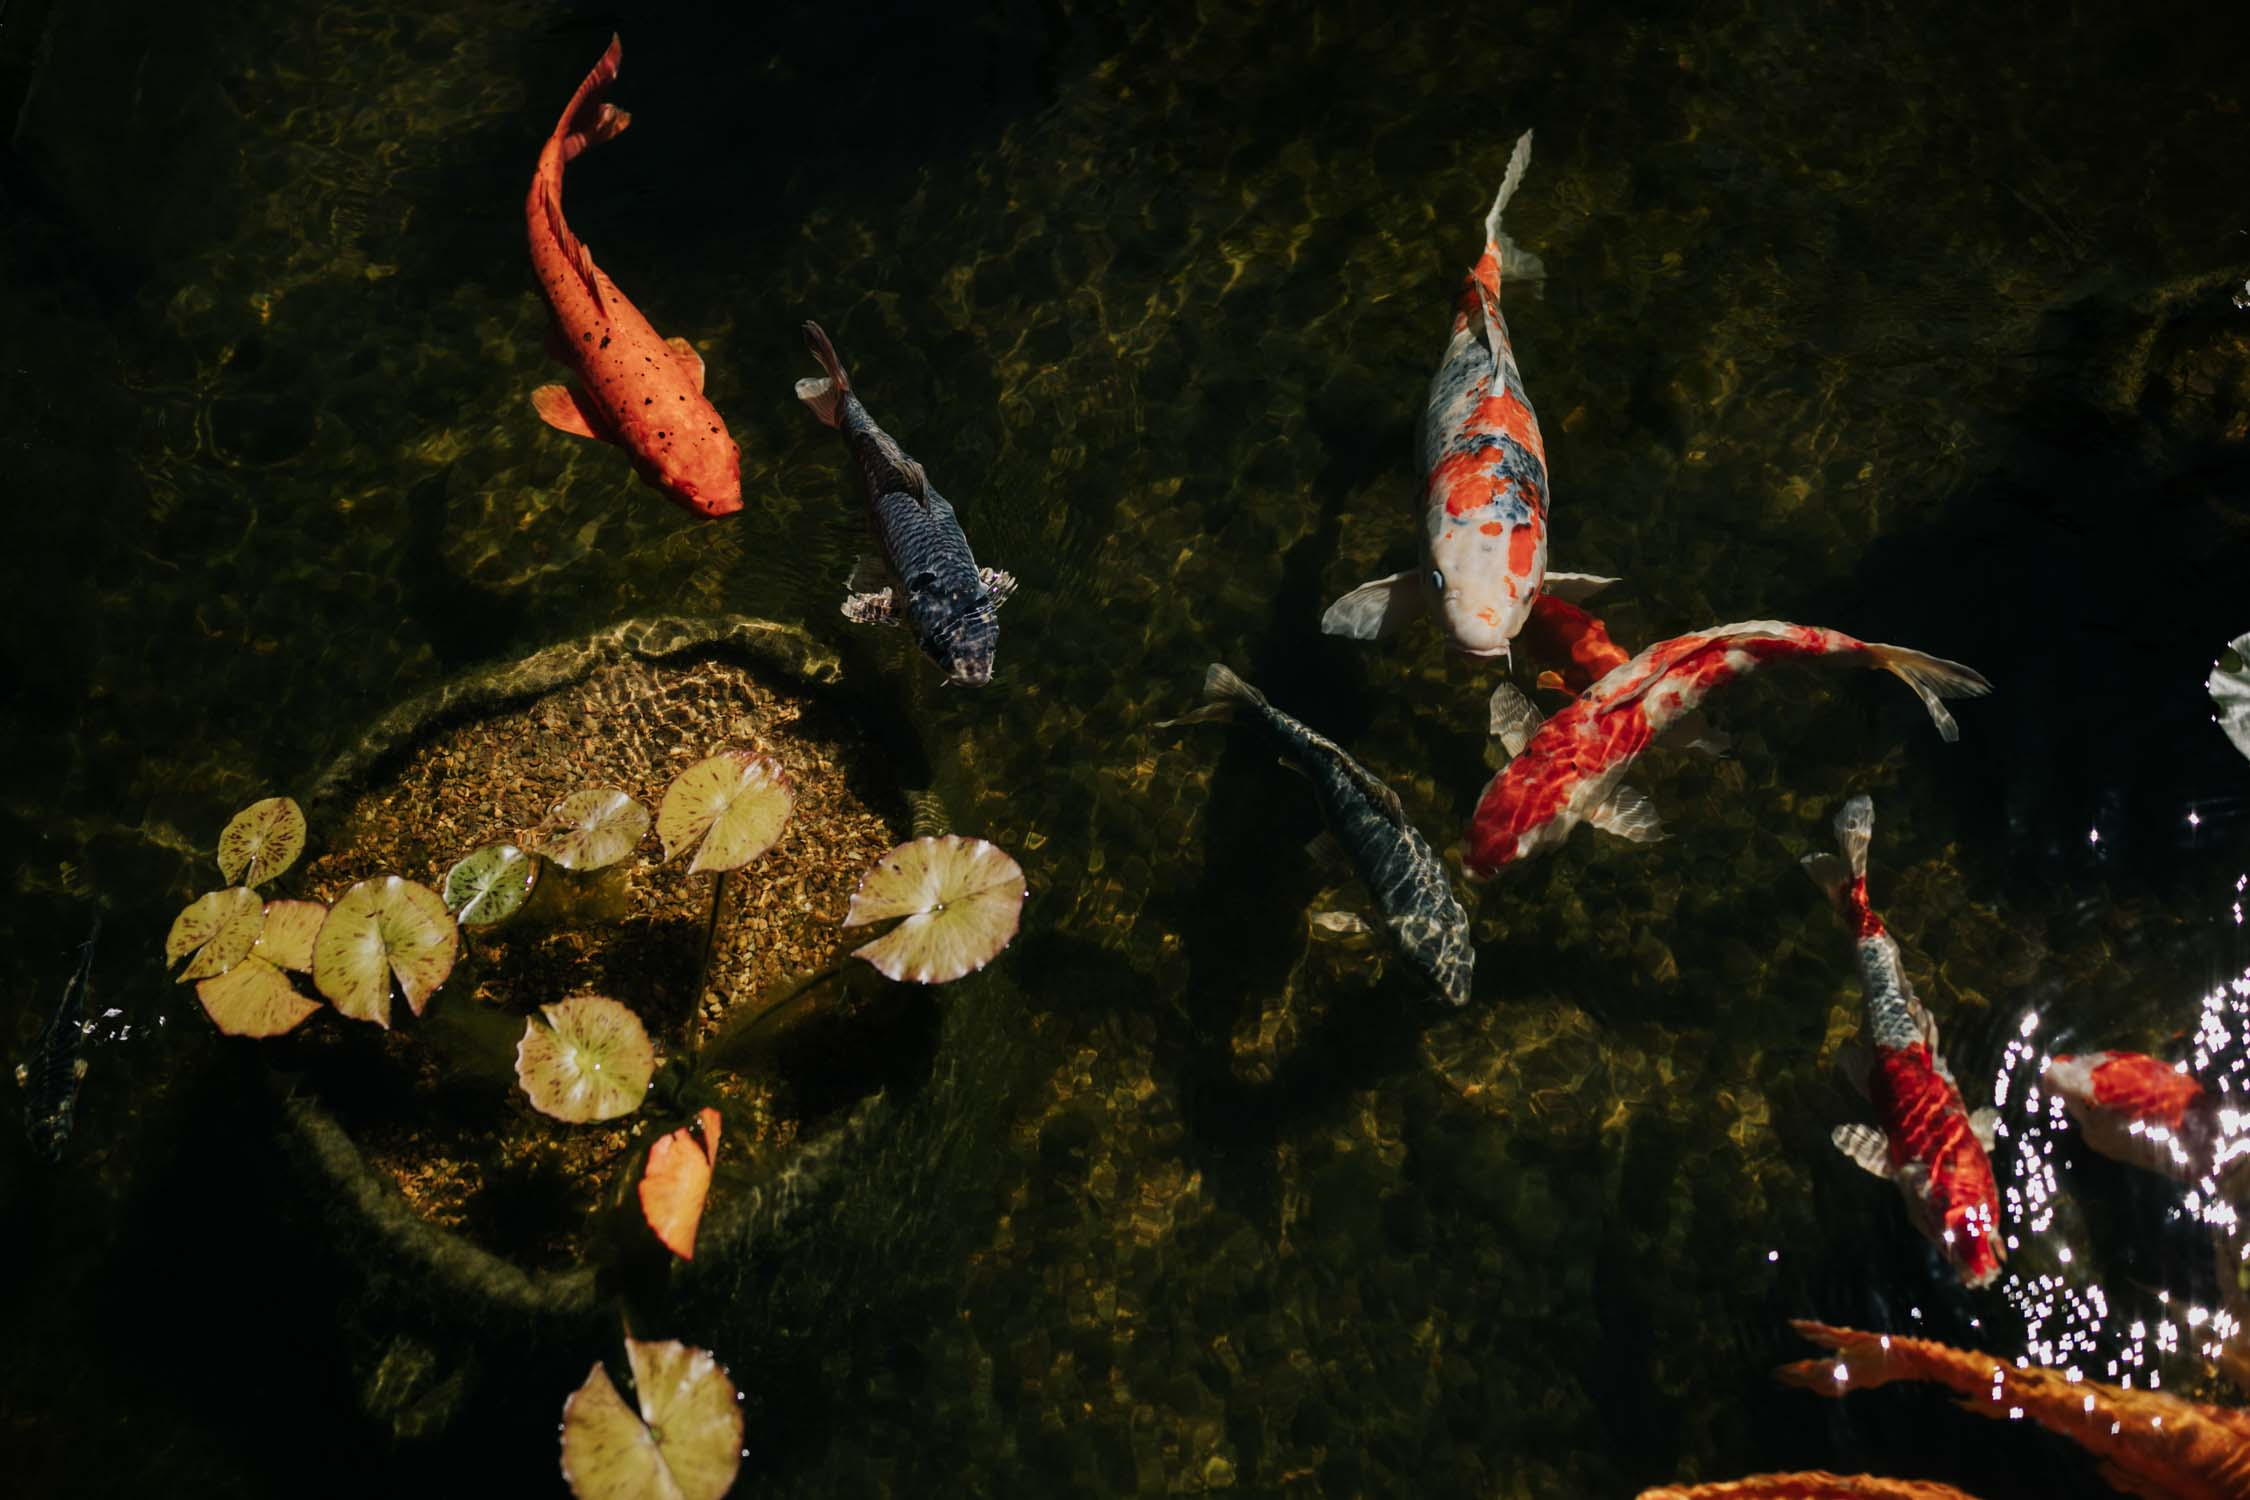 Koi Pond at Maison Noir